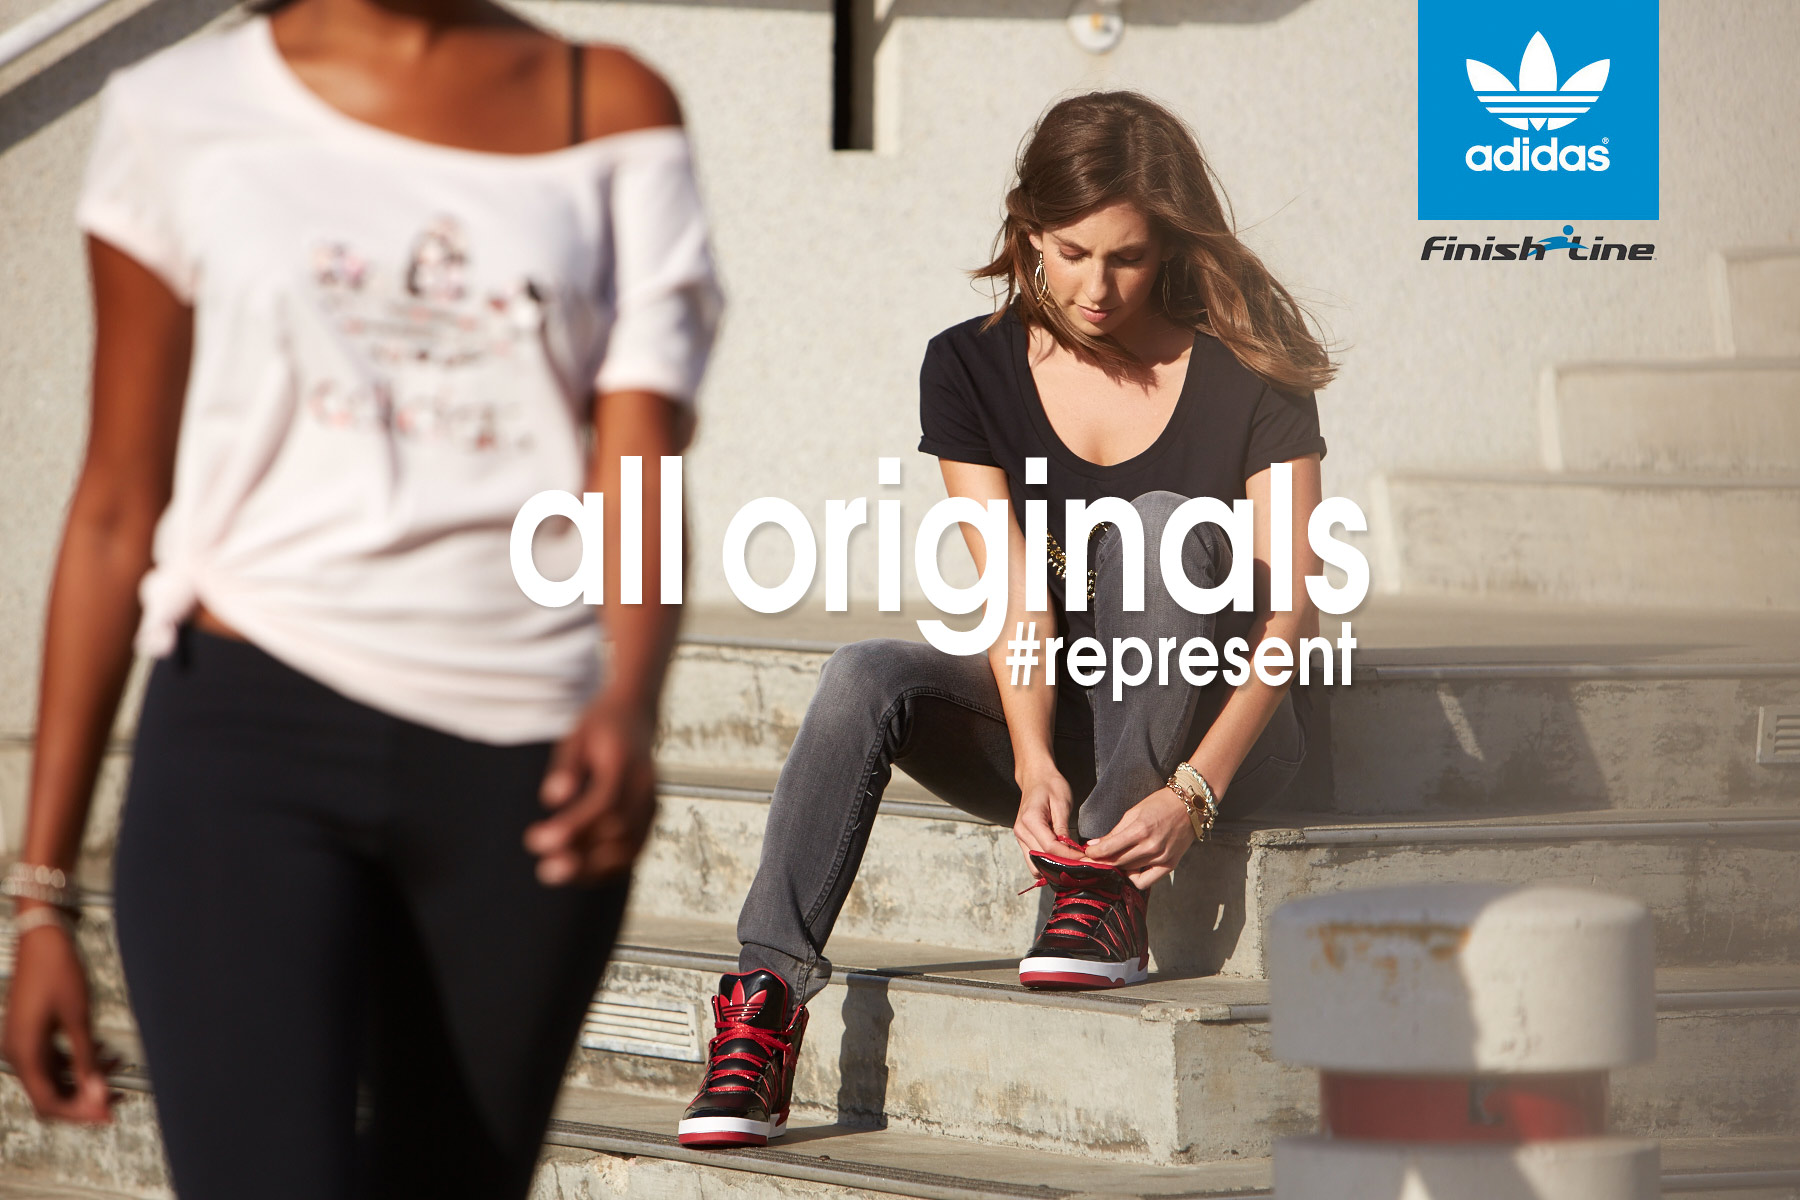 Finishline_Adidas_Advertising_Photographer_Los_Angeles_Urban_Apparel_Clothing_Athletic_Photographer